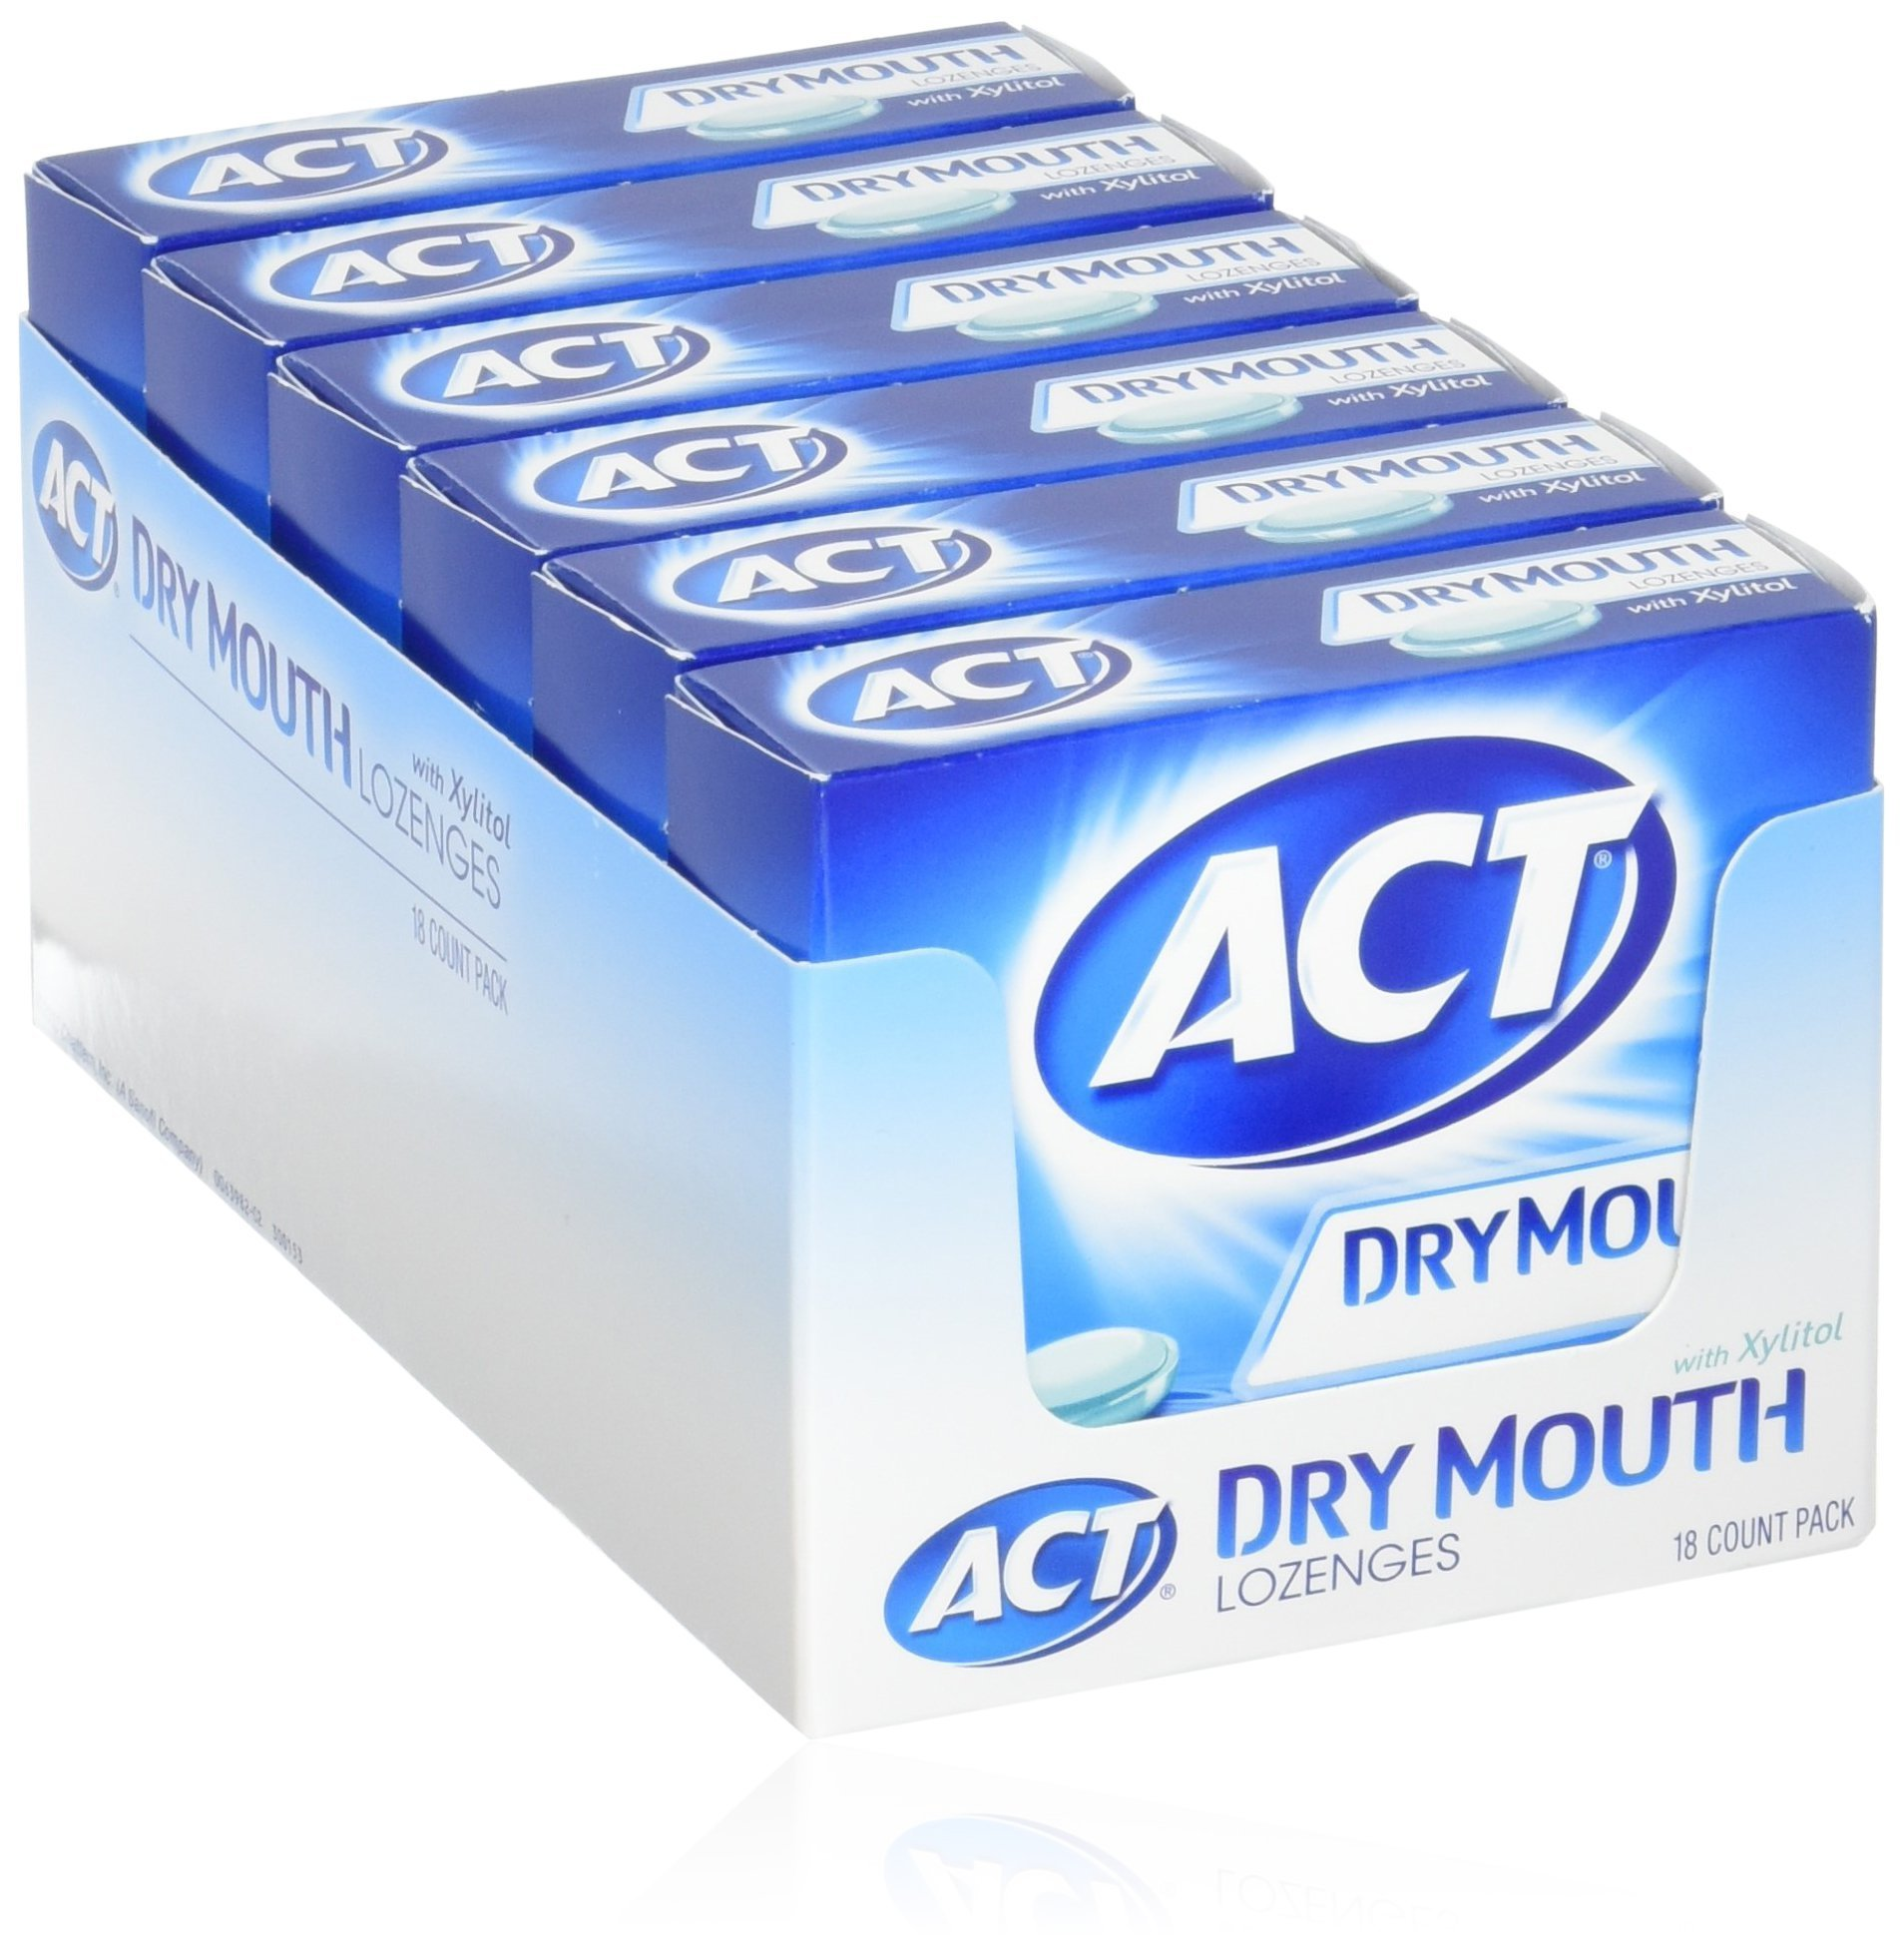 ACT Total Care, Dry Mouth Lozenges, 18 Count (Pack of 6), Soothing Mint Flavored Lozenges with Xylitol Help Moisturize Mouth Tissue to Sooth and Relieve Discomfort from Dry Mouth, Freshens Breath by ACT (Image #1)